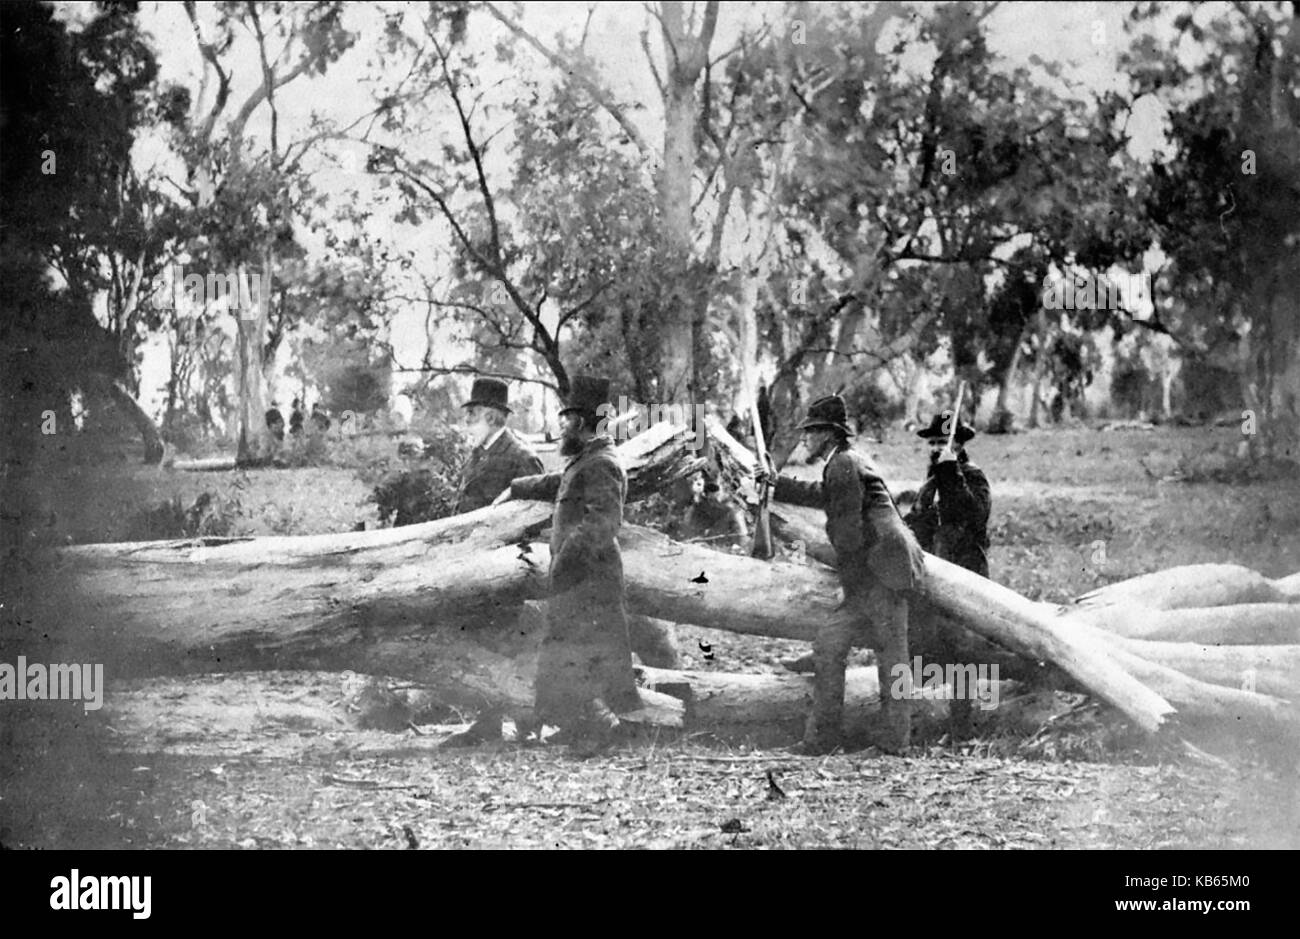 NED KELLY (1854-1880) Police and rangers pose beside the broken tree at Glenrowan, Victoria, where the Australian - Stock Image